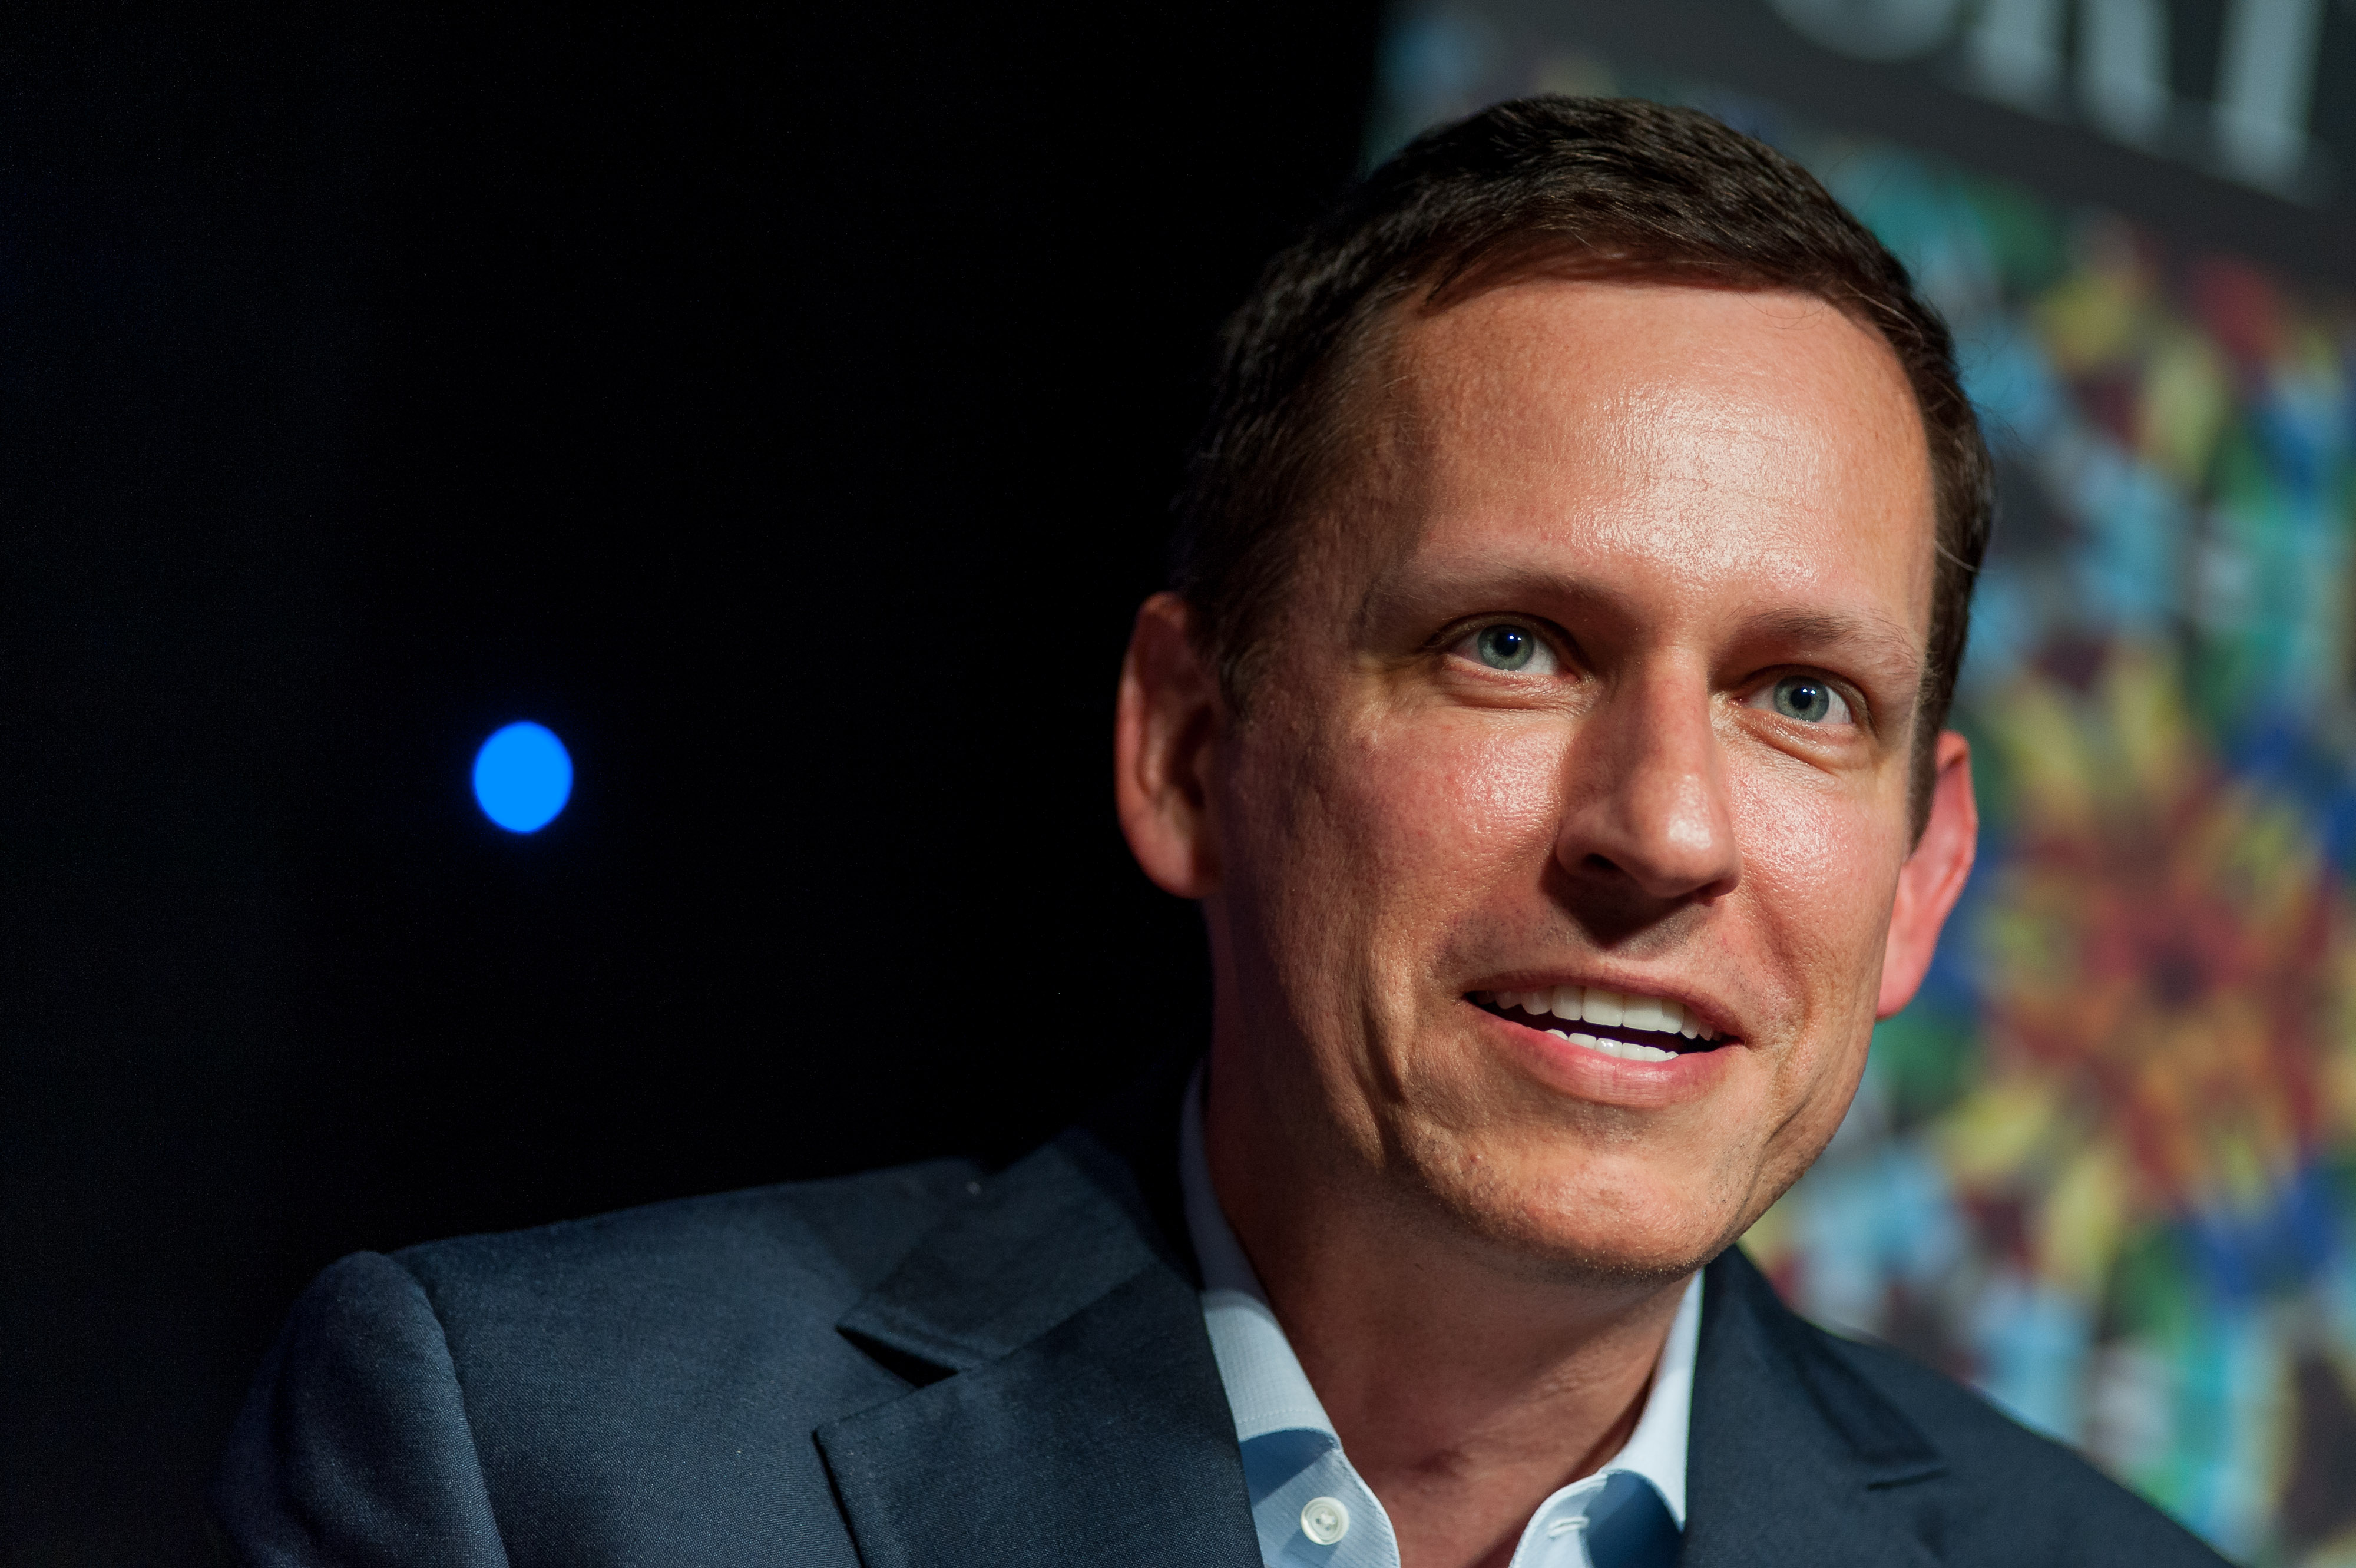 Peter Thiel isn't so sure self-driving tech is a good investment